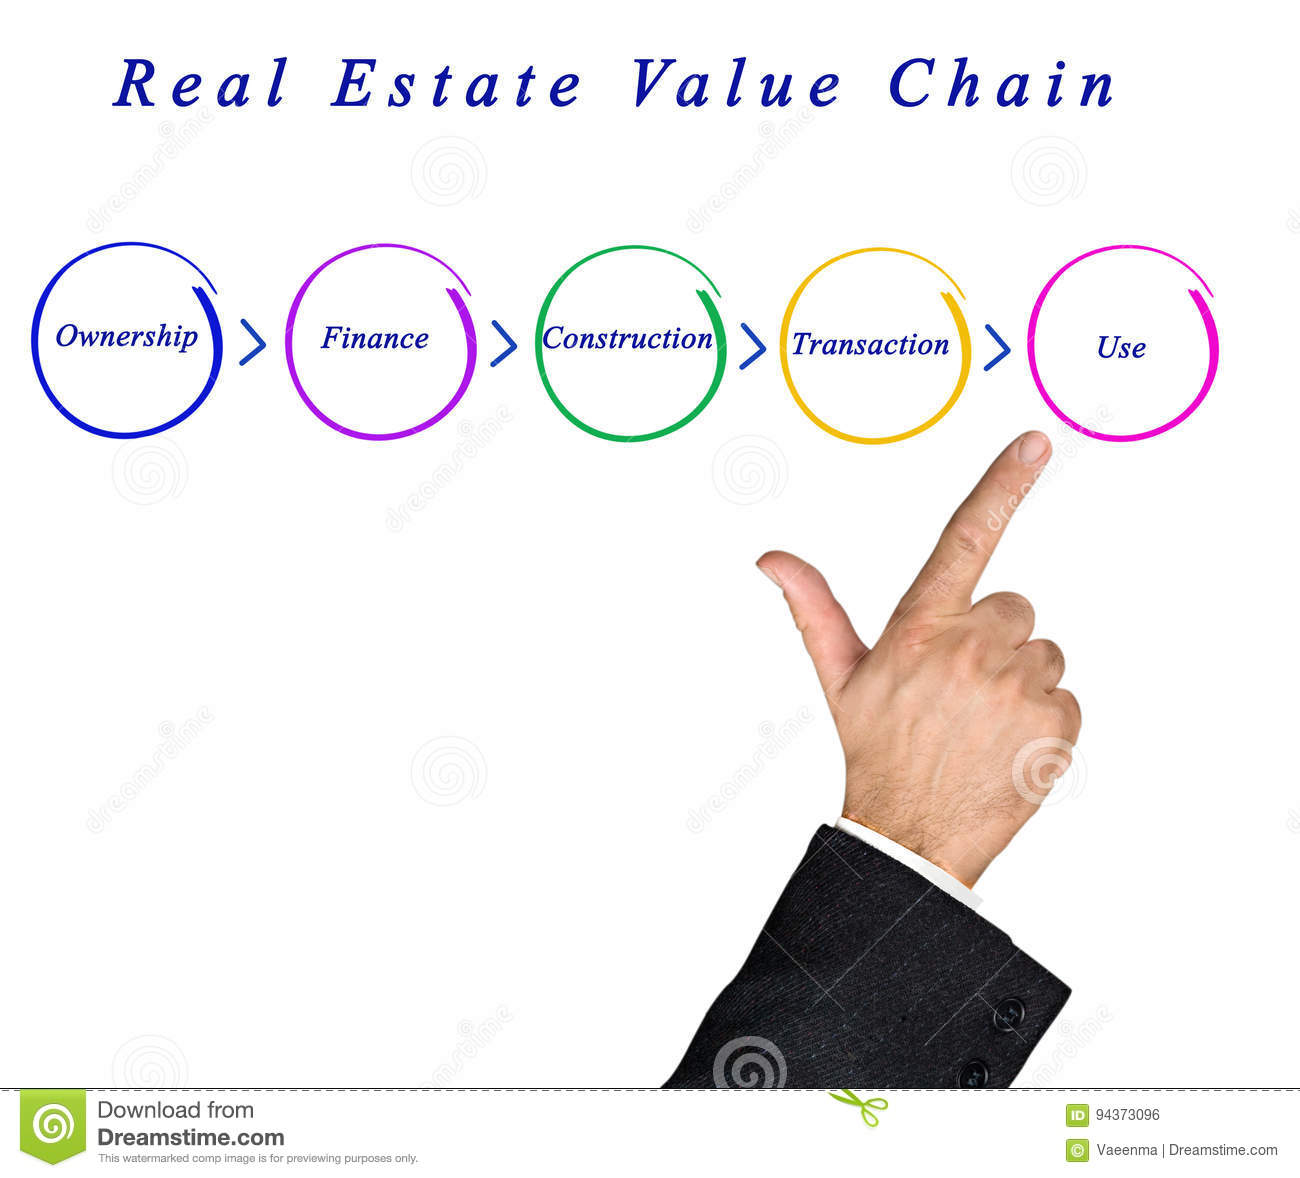 Top 4 Things That Determine a Home's Value